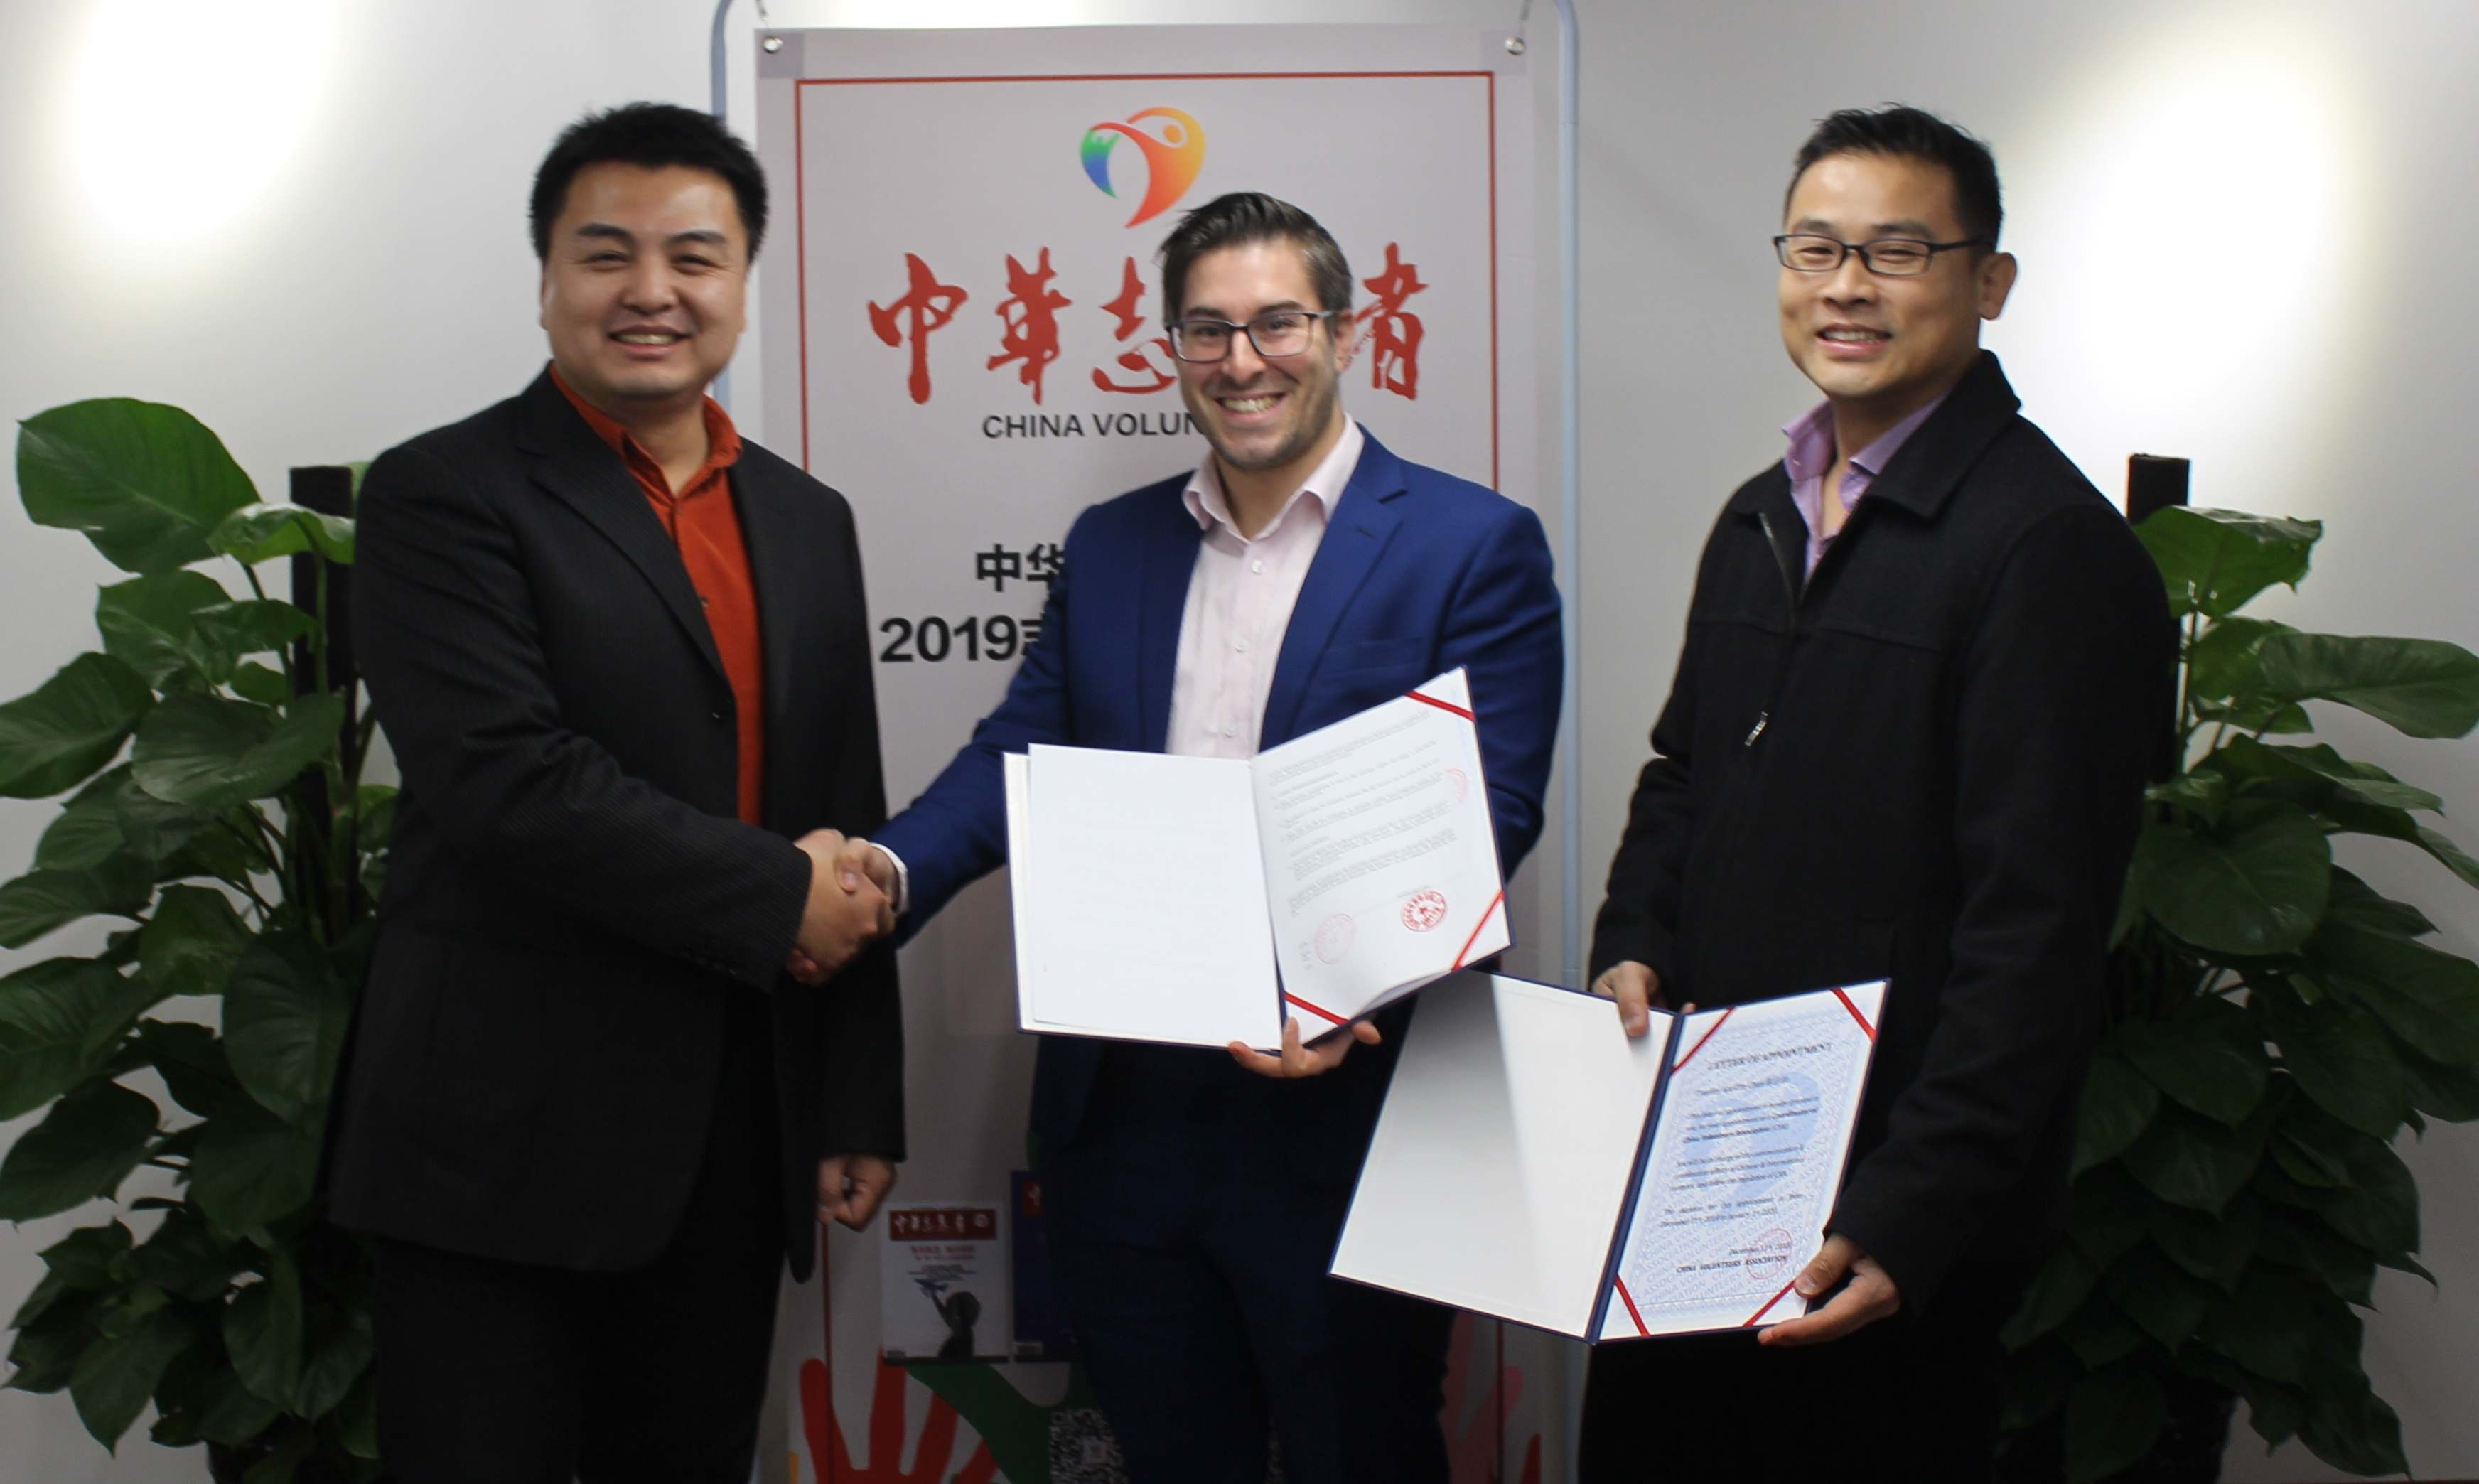 CVA MoU InternsInBeijing Olympic Games 2022 Volunteers